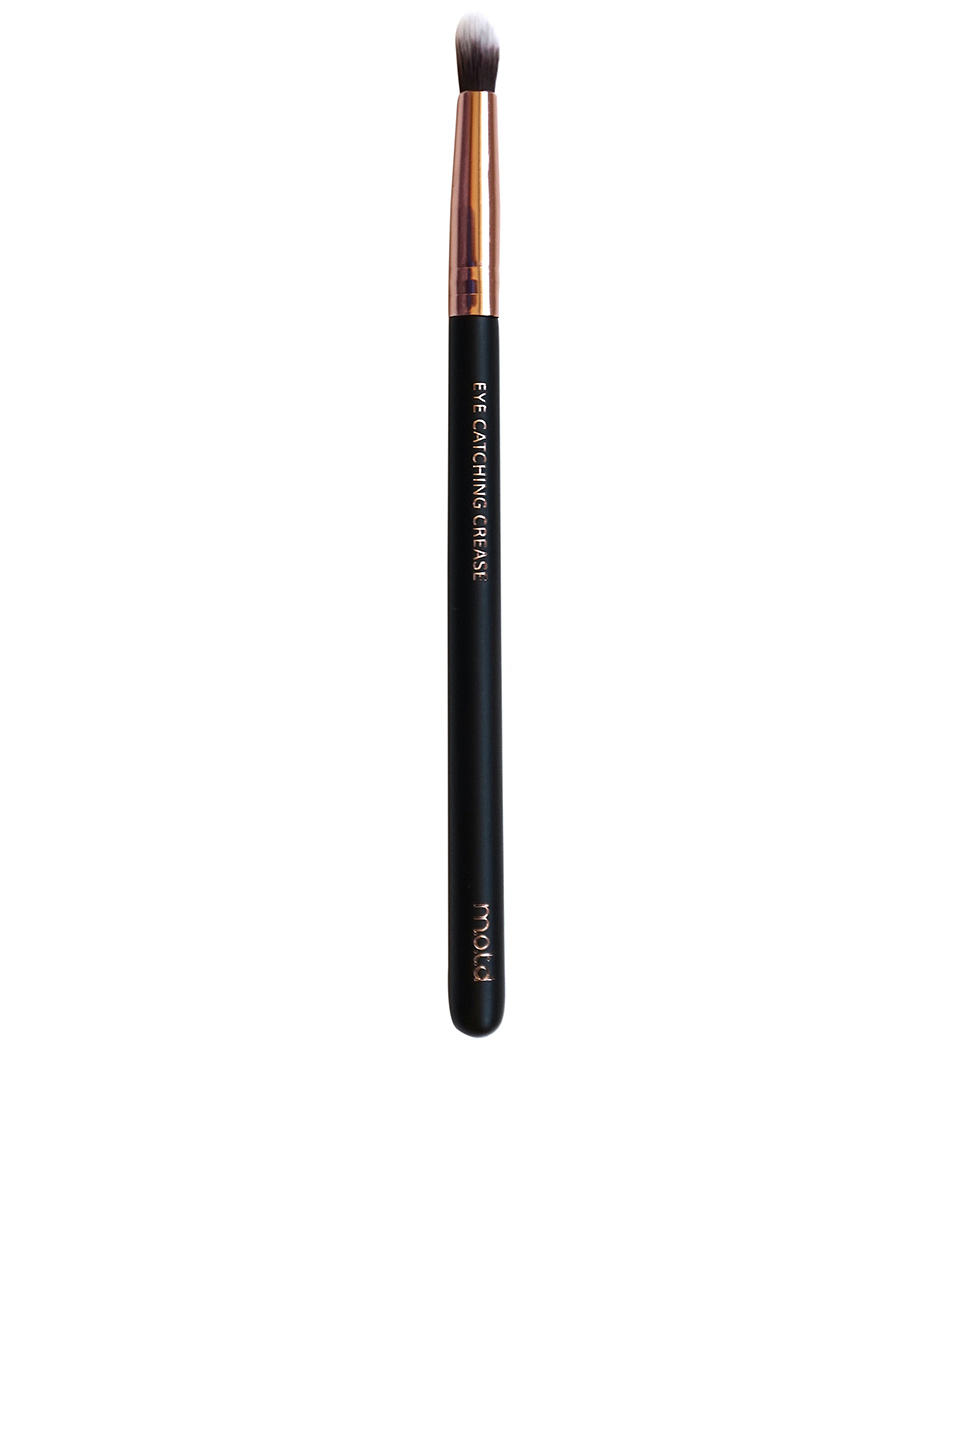 M.O.T.D. Cosmetics Eye Catch Crease Eye Crease Brush in All